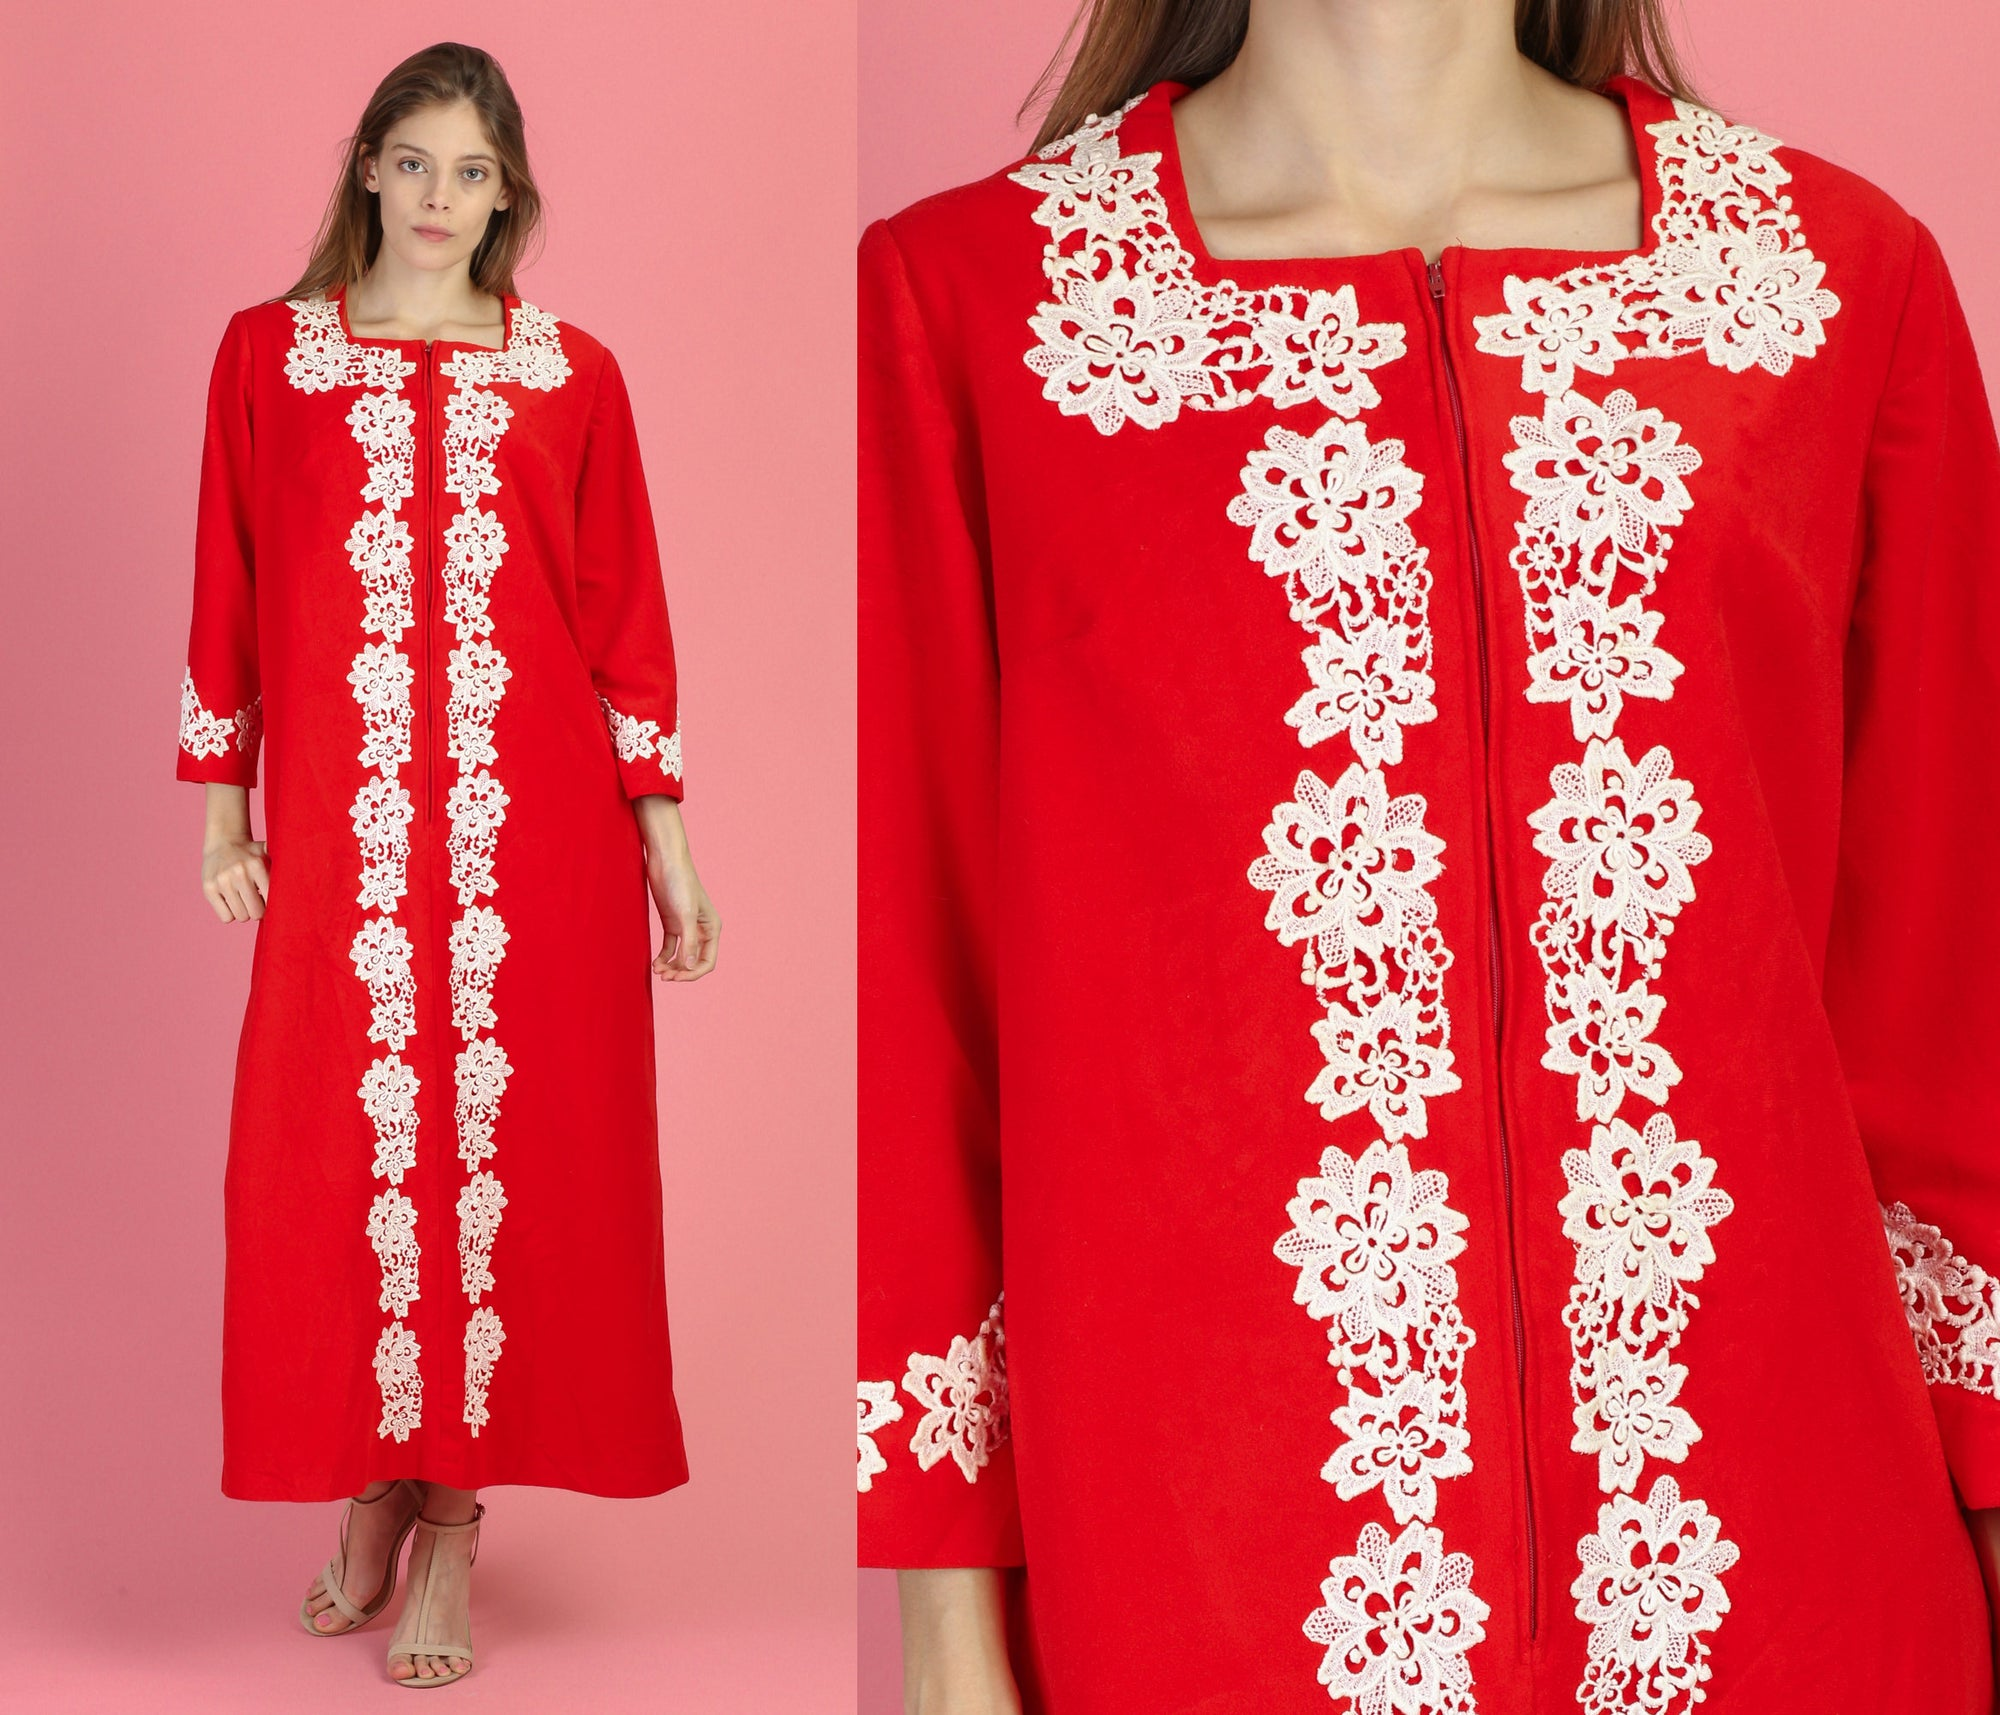 70s Red Felt Crochet Loungewear Robe - One Size